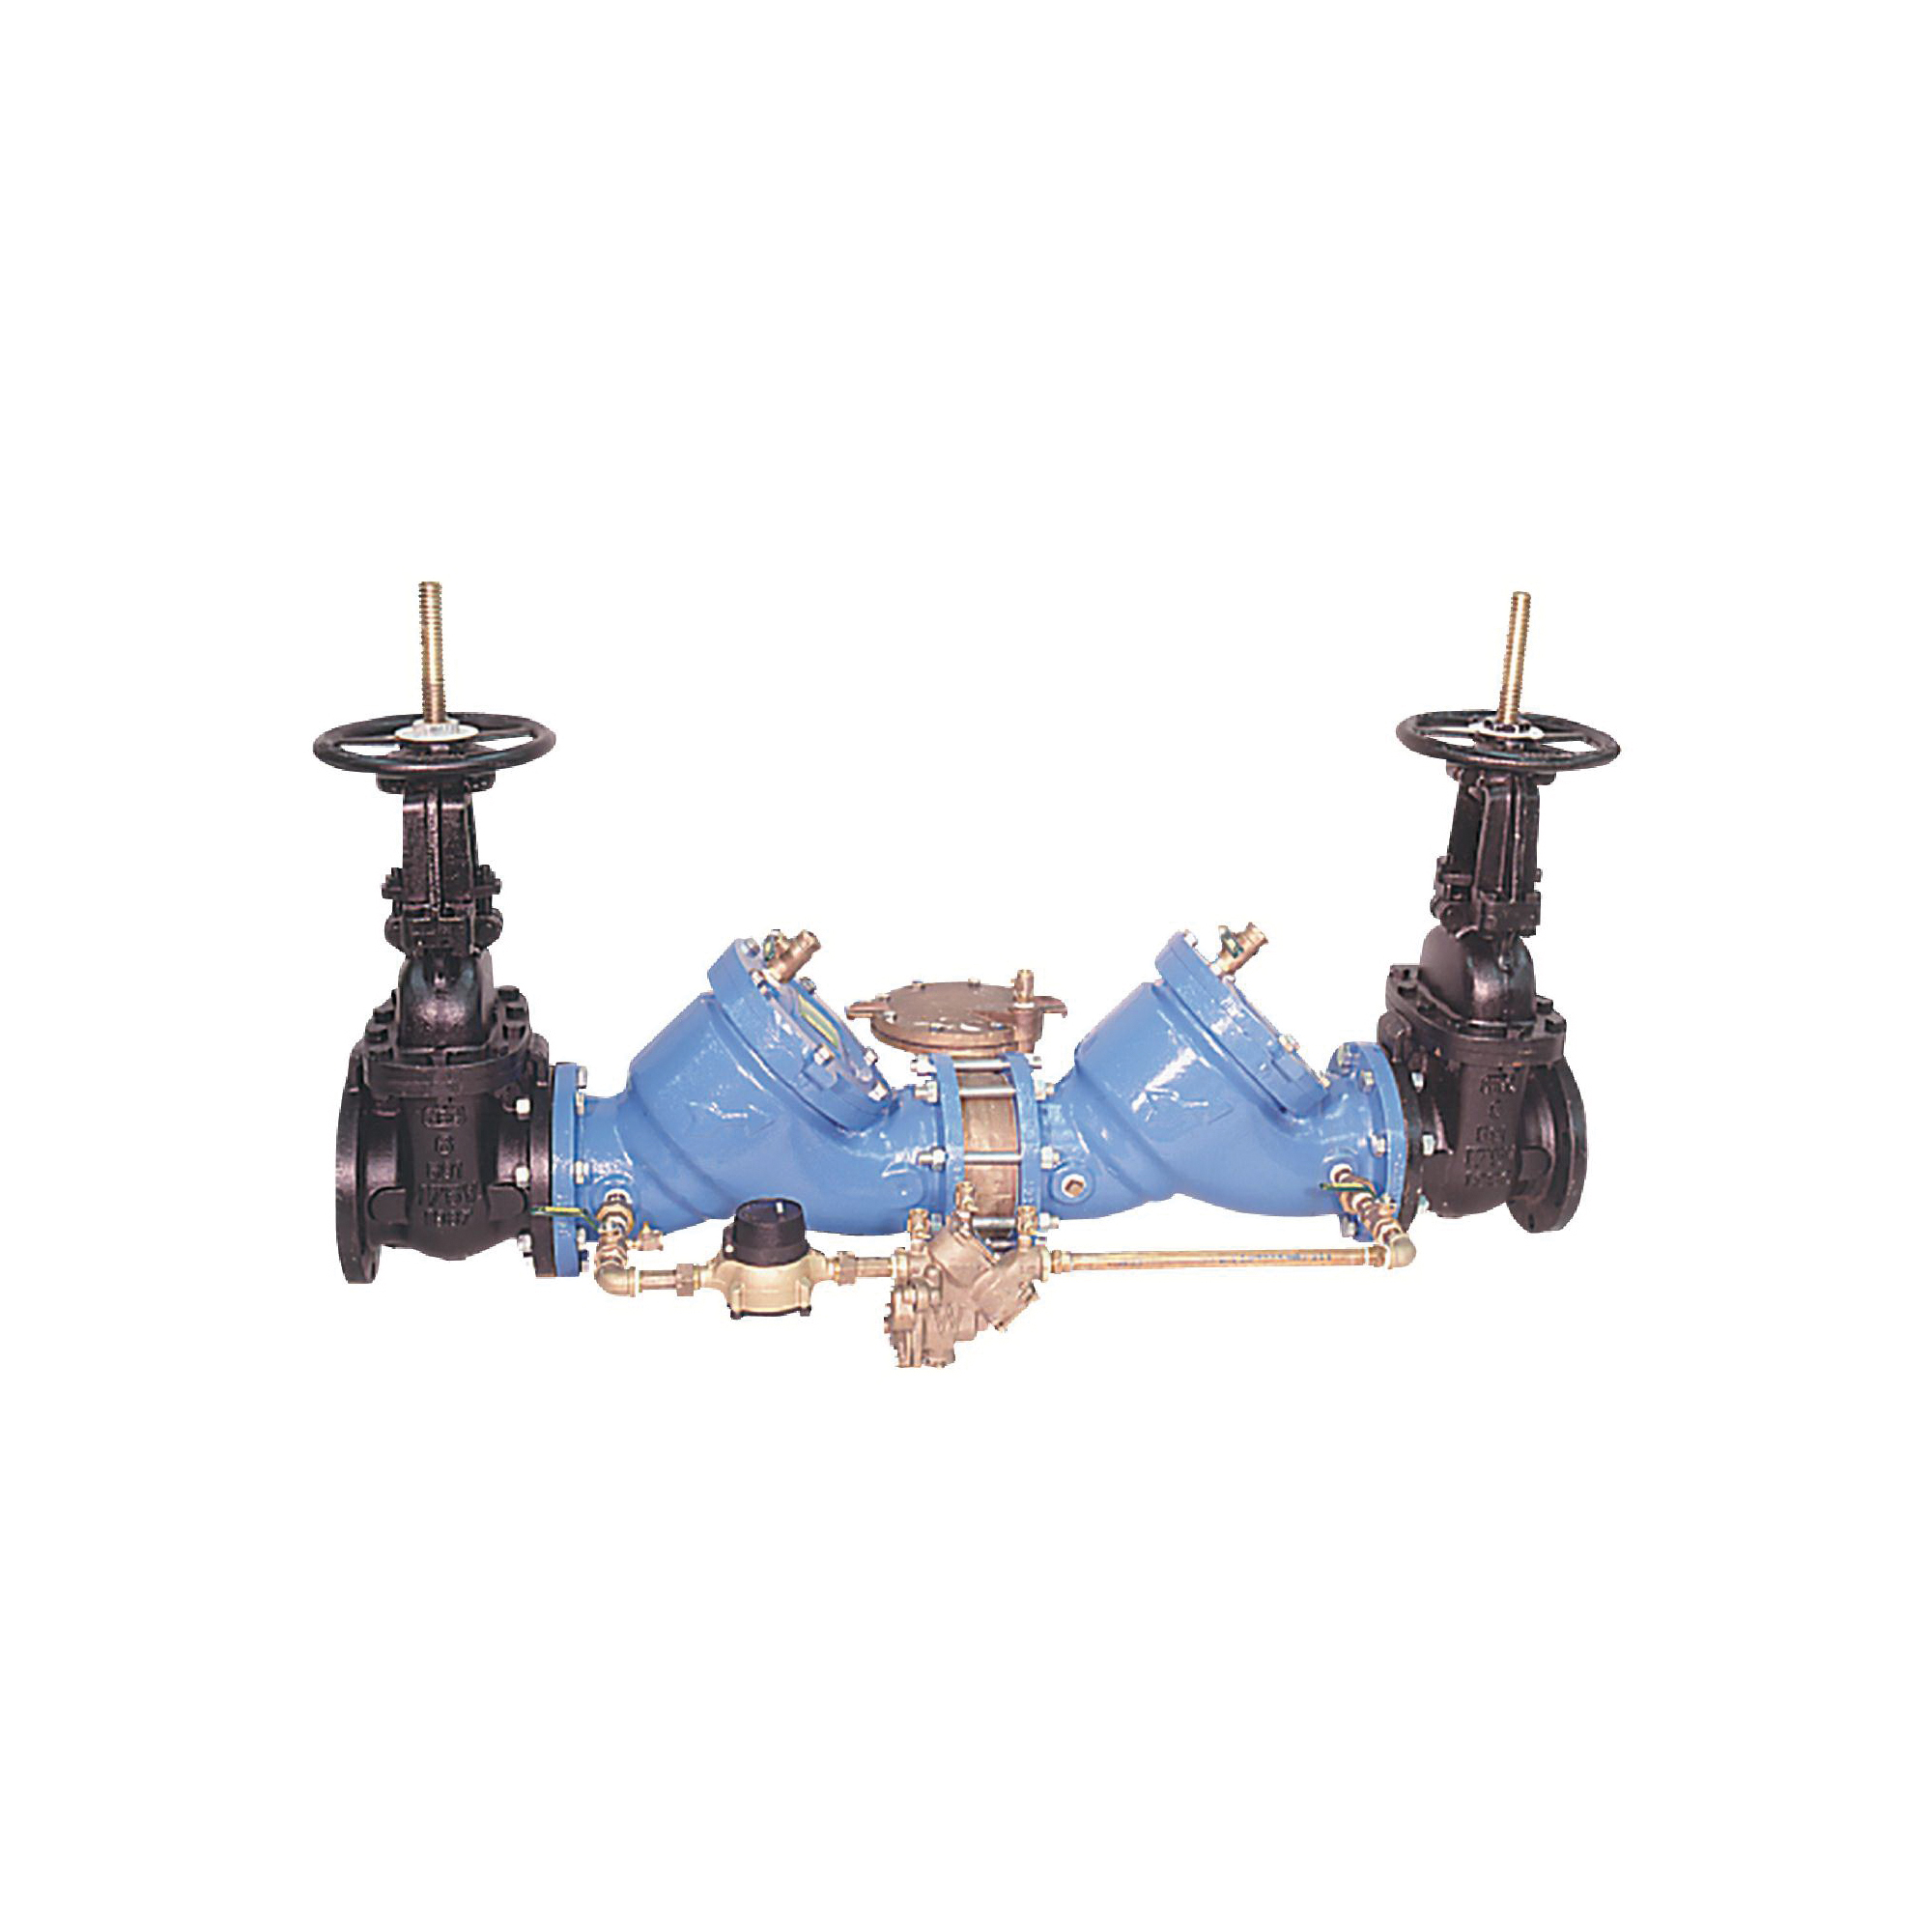 WATTS® 0387466 909RPDA Detector Assembly, 6 in, Resilient Seated Gate Valve, Cast Iron Body, Reduced Pressure Backflow